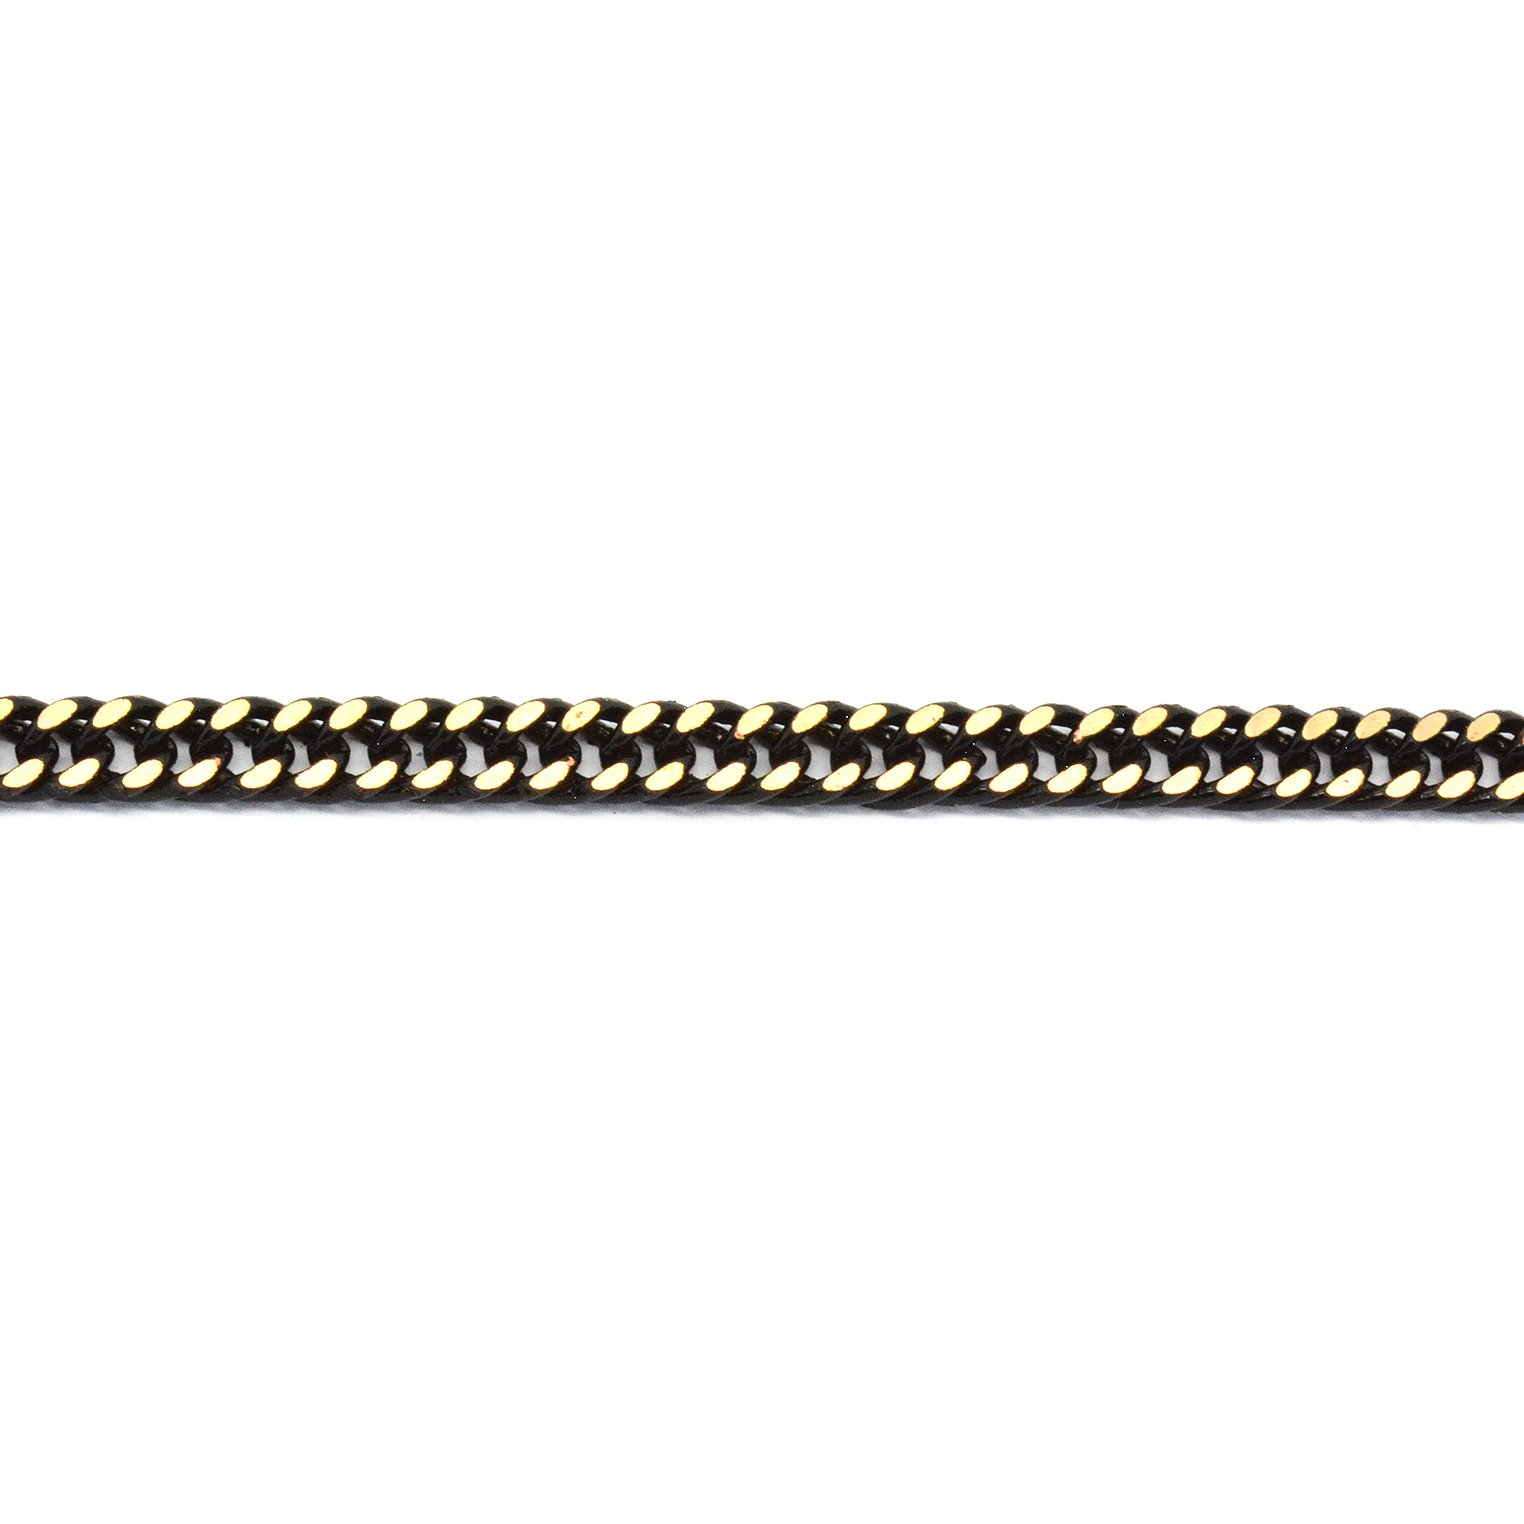 Flat 4.2mm Black with Gold touch Gourmet Chain